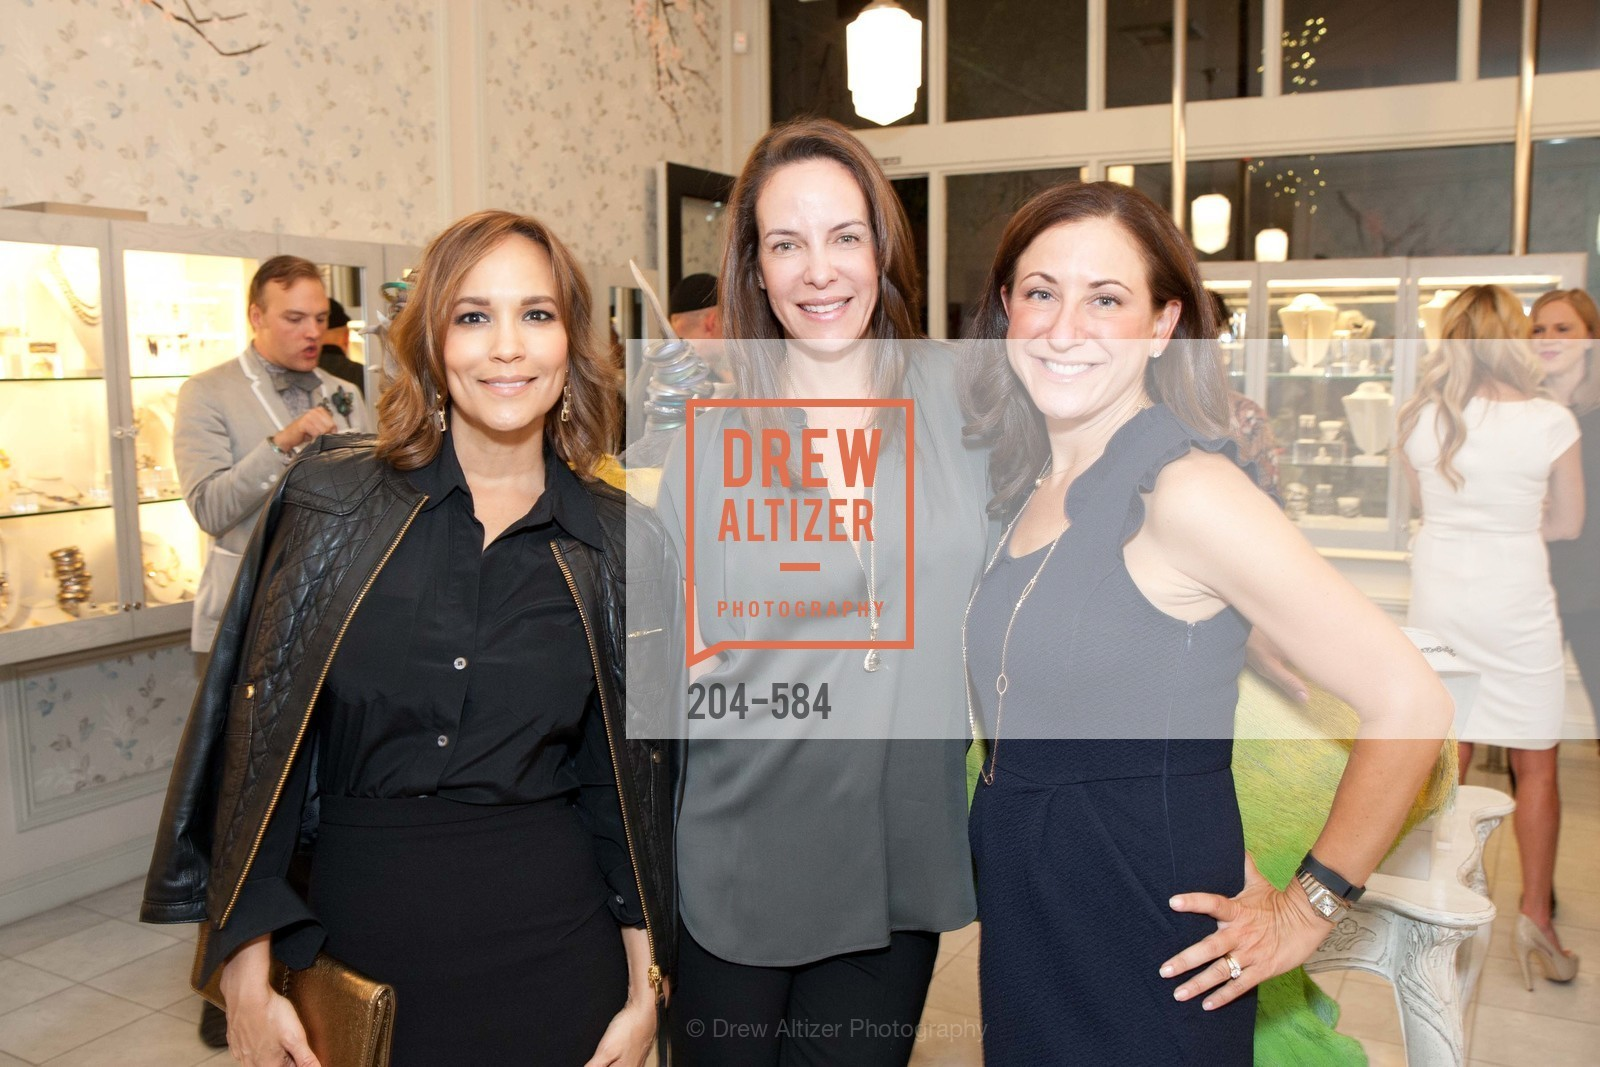 Lora DuBain, Julie Veronese, Victoria Dade, Alexis Bittar Event; Support of the San Francisco Fall Antique Show Benefitting Enterprise for High School Students Francisco Fall Antique Show, benefiting Enterprise for High School Students, US, October 2nd, 2014,Drew Altizer, Drew Altizer Photography, full-service agency, private events, San Francisco photographer, photographer california